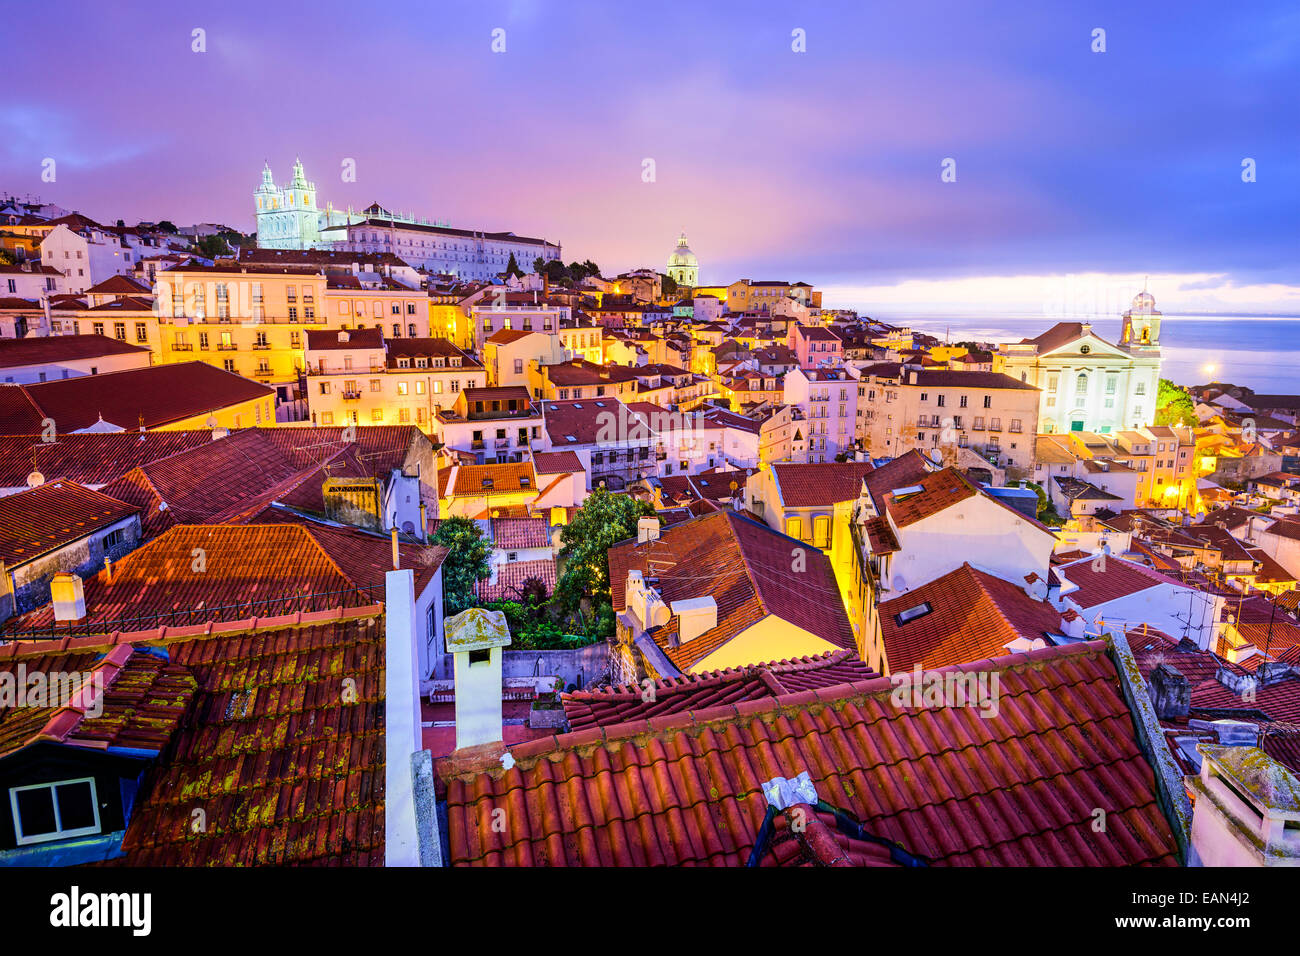 Lisbon, Portugal skyline at Alfama, the oldest district of the city. - Stock Image